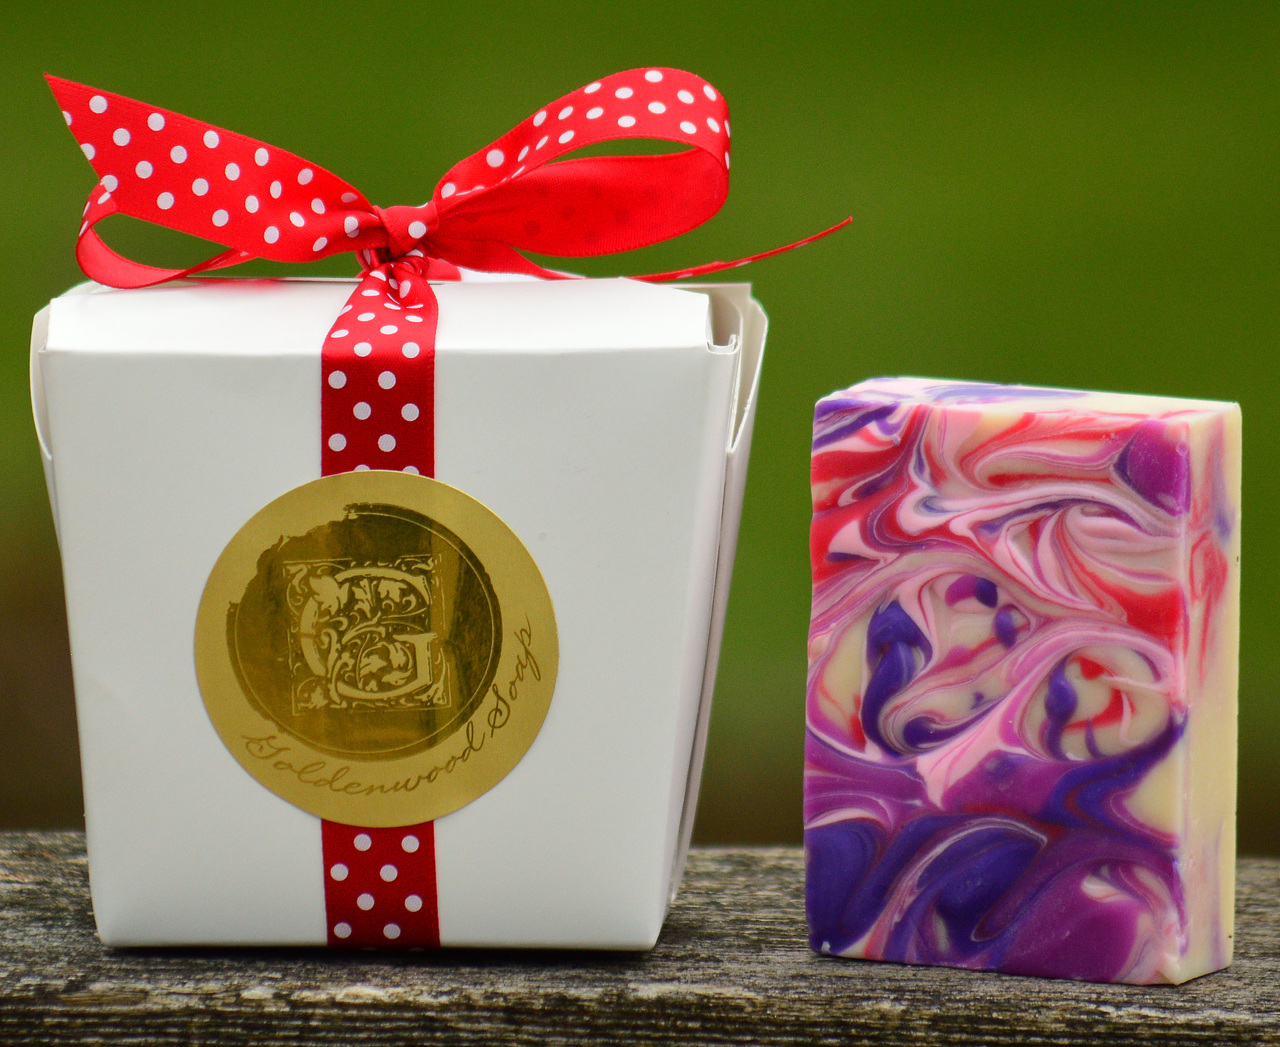 Create Your Own Single Gift #3 - Artisan Goat Milk Soap